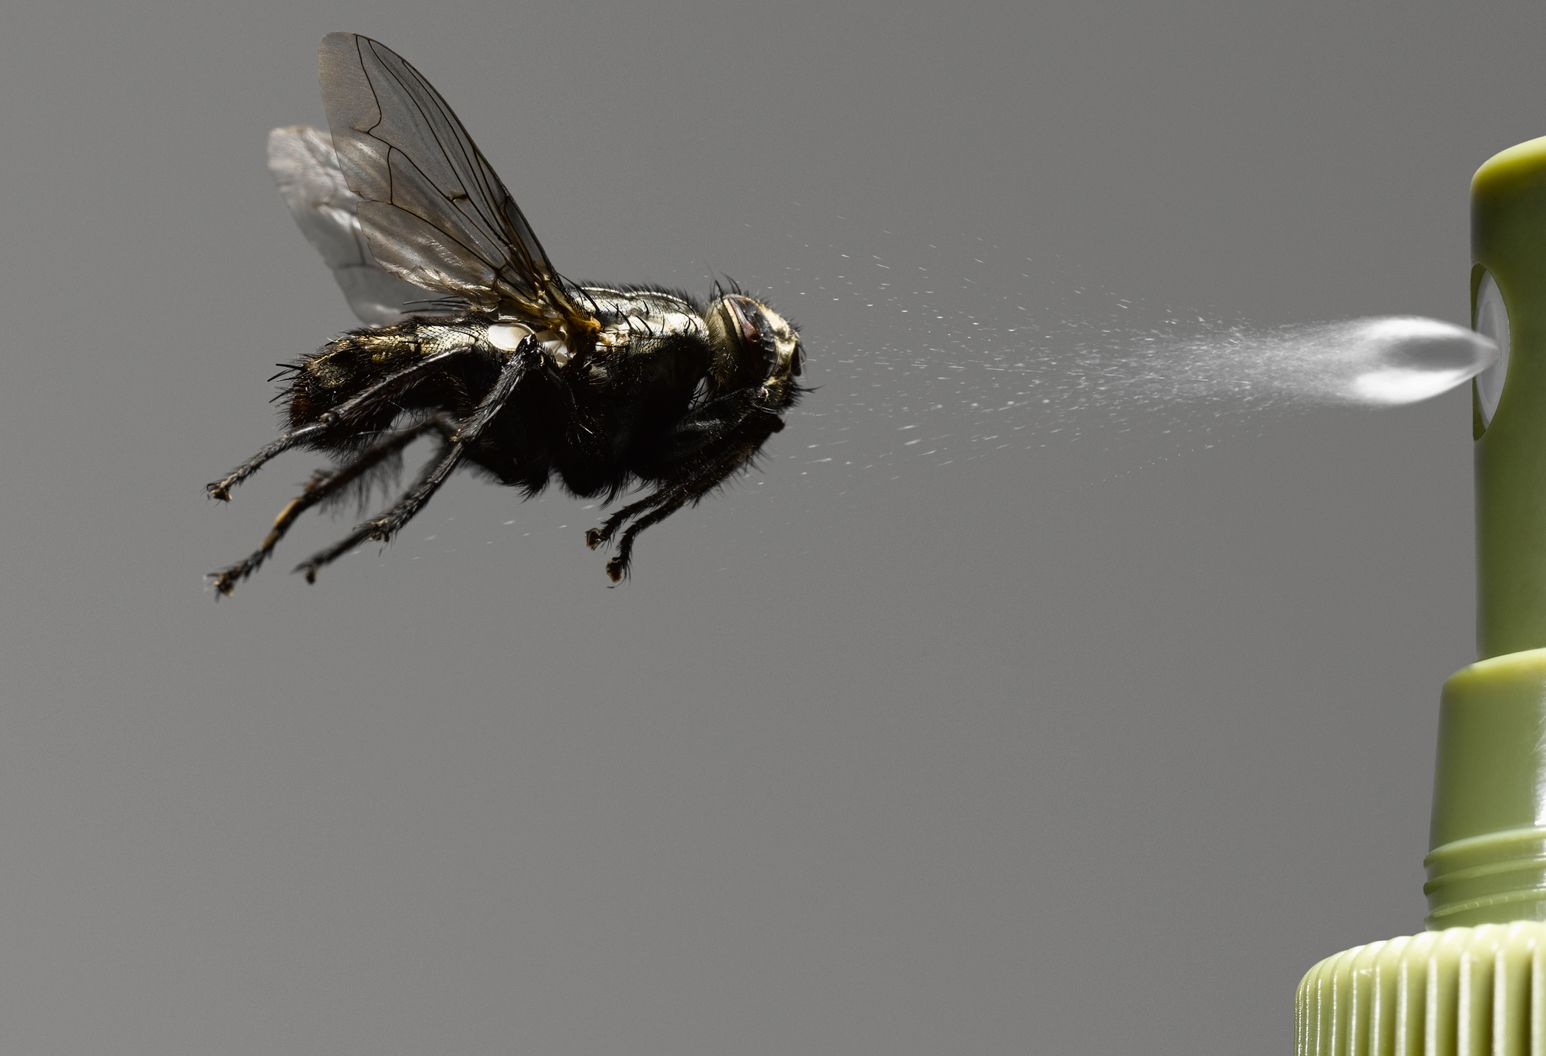 A winged insect is flying towards a green spray nozzle shooting out a clear liquid.